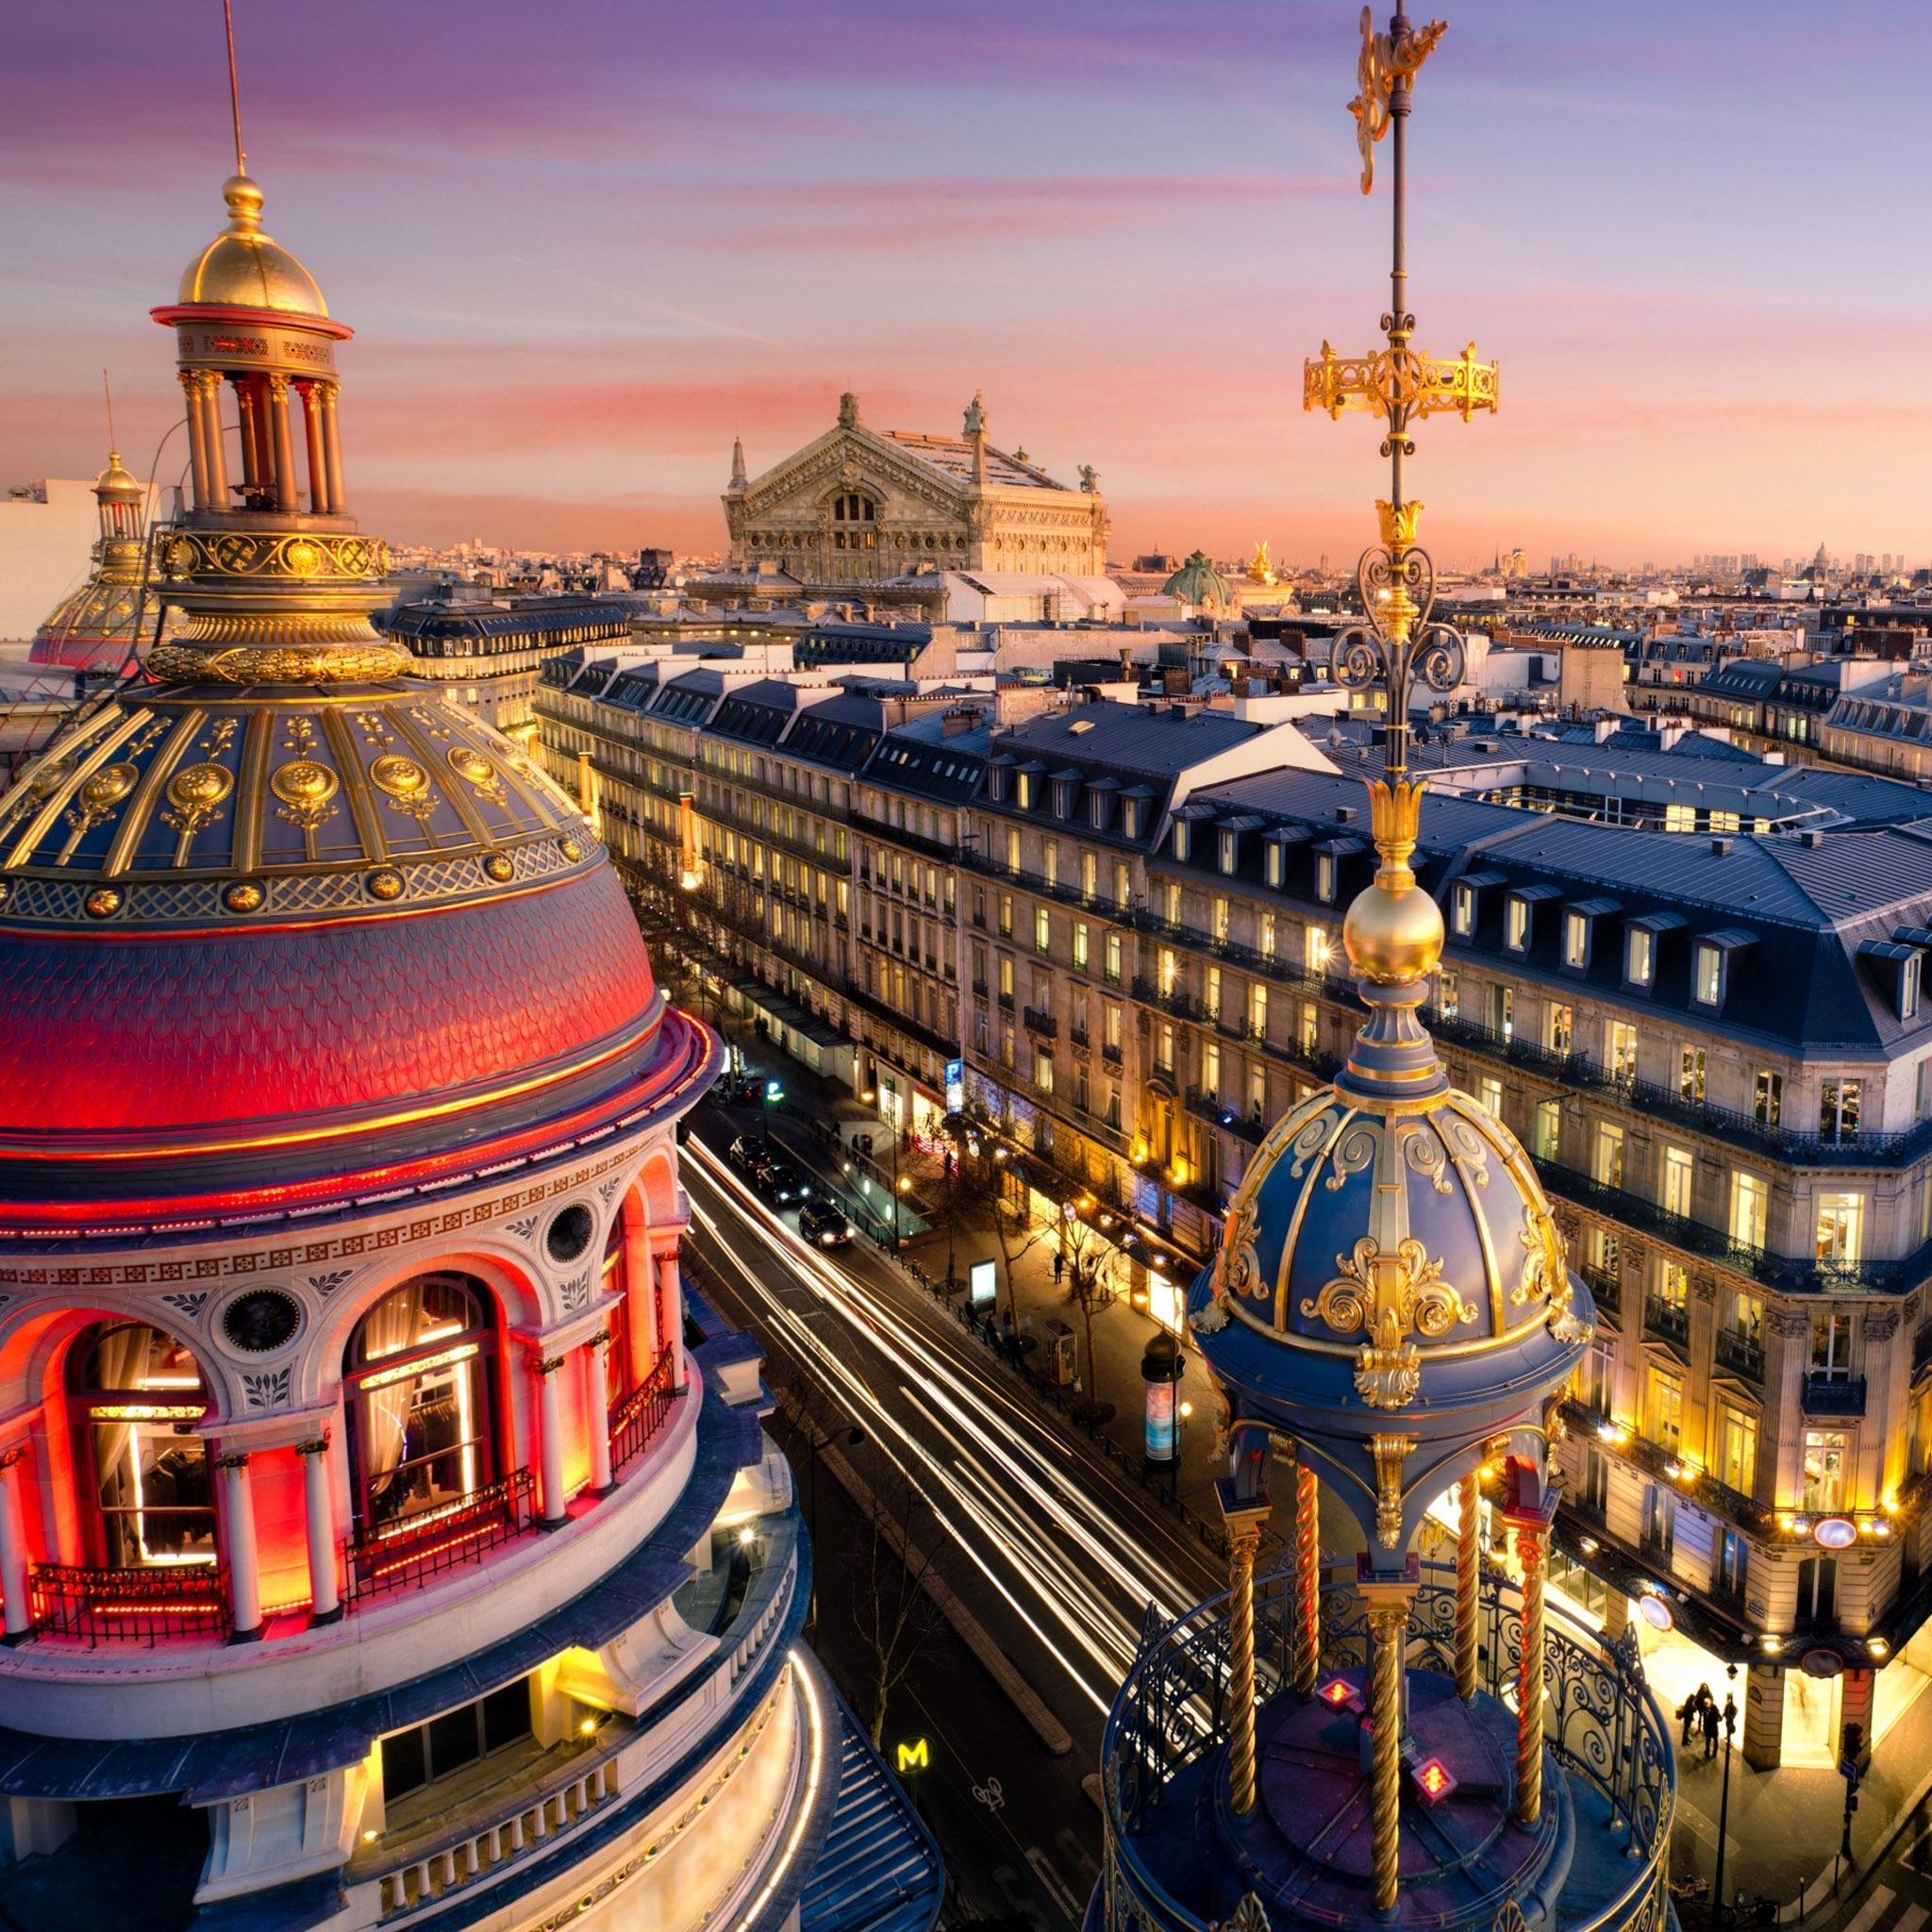 grand opera paris ipad air wallpaper download | iphone wallpapers